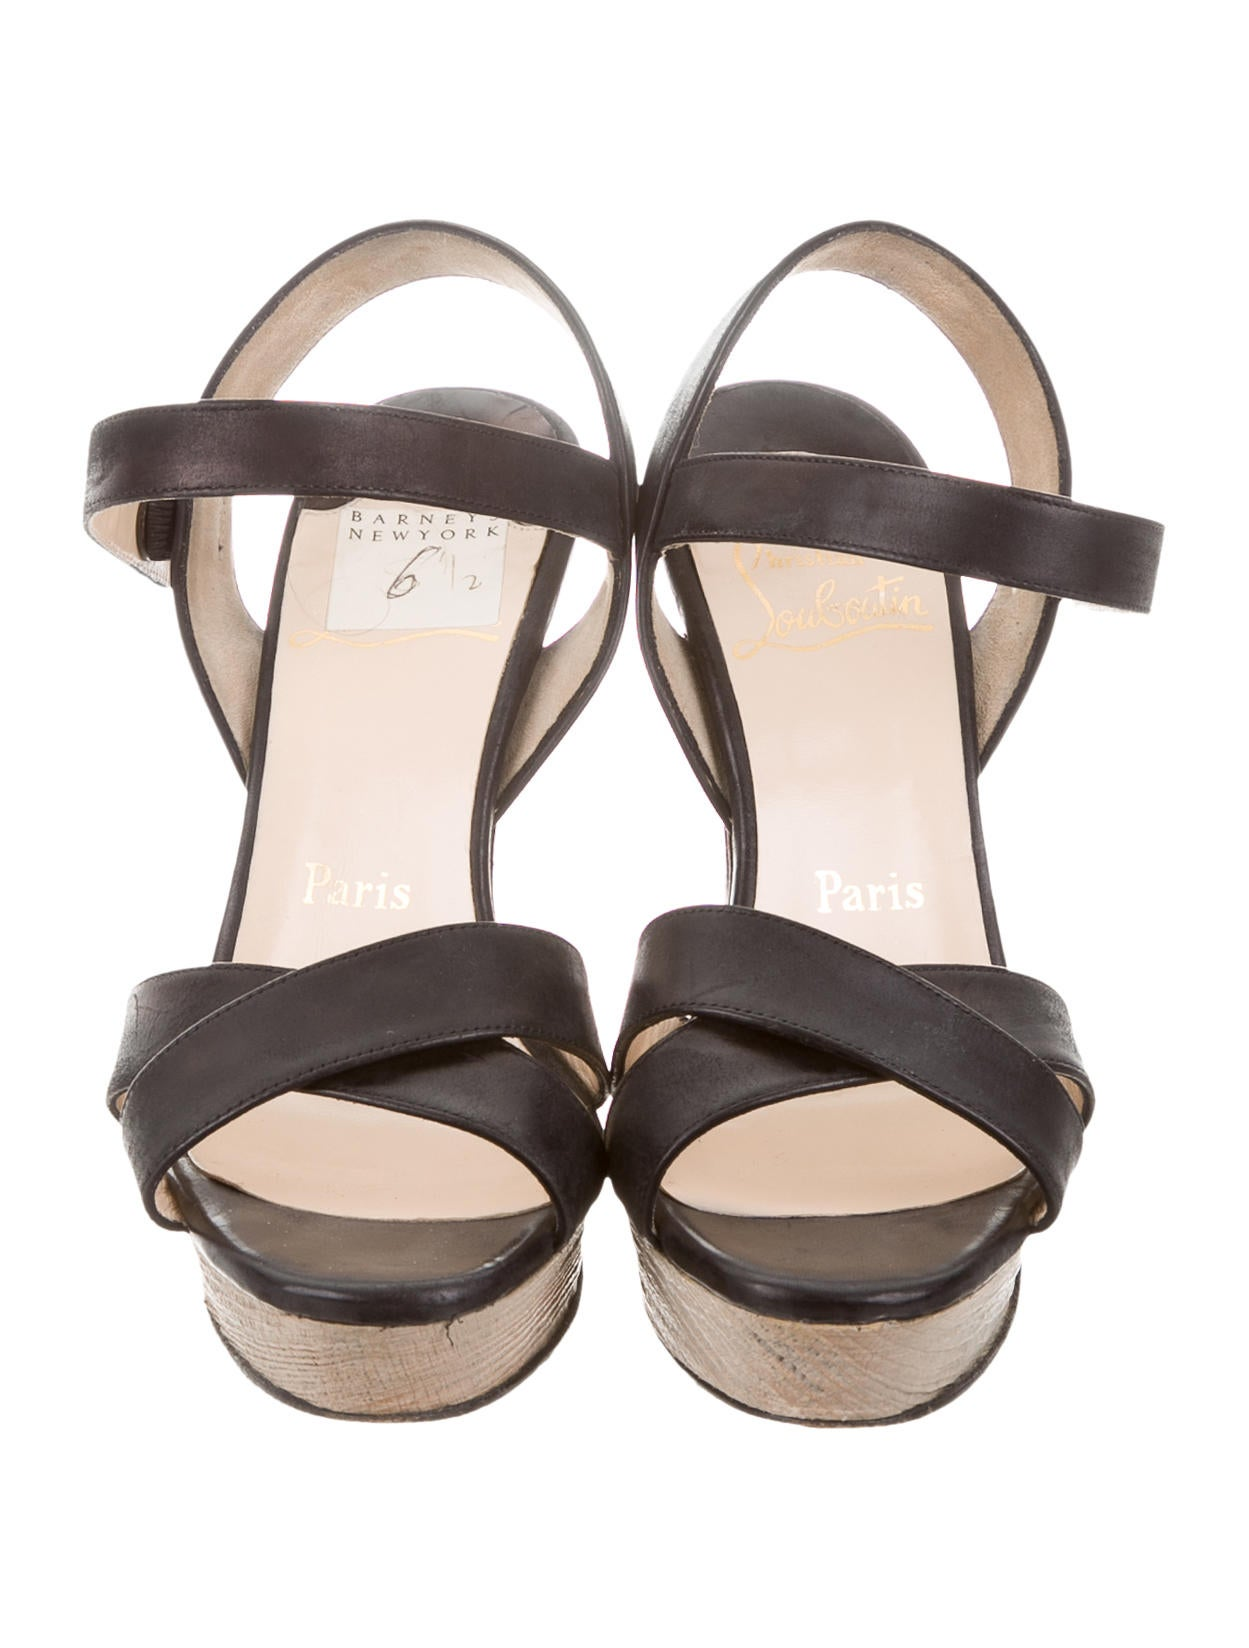 Free shipping on women's ankle strap sandals at dexterminduwi.ga from the best brands including Steve Madden, Sam Edelman, Vince Camuto and more. Free shipping and returns.